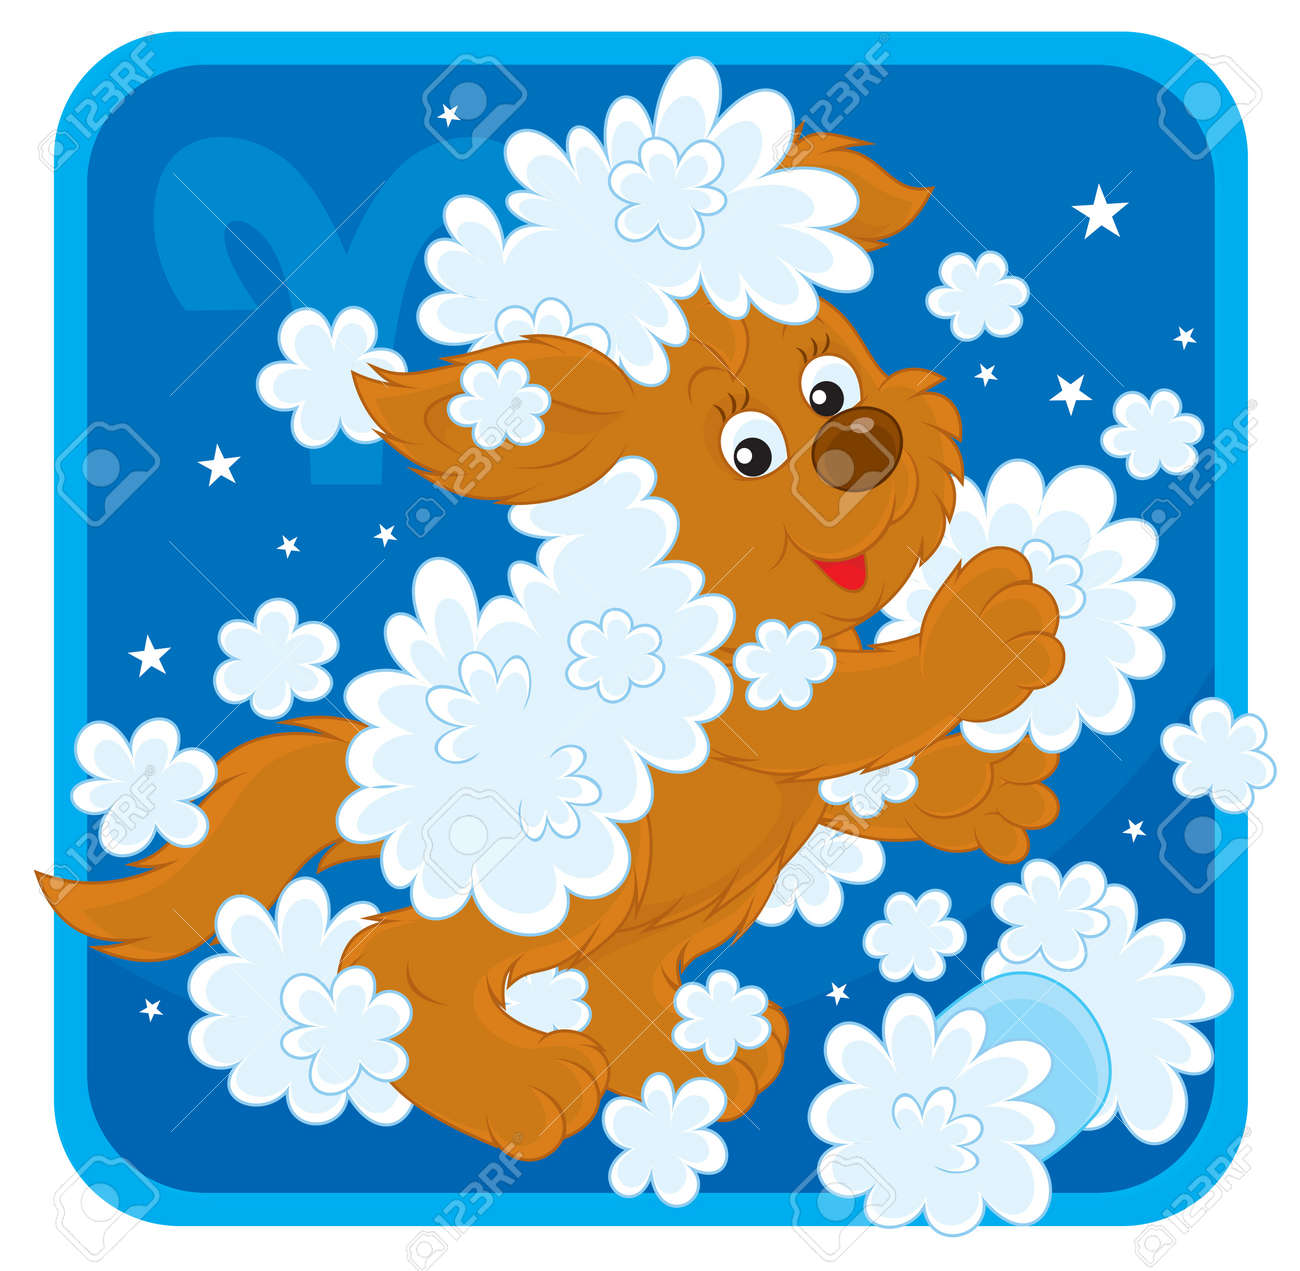 Zodiac sign of Aries as a pup playing with wool Stock Vector - 17466021